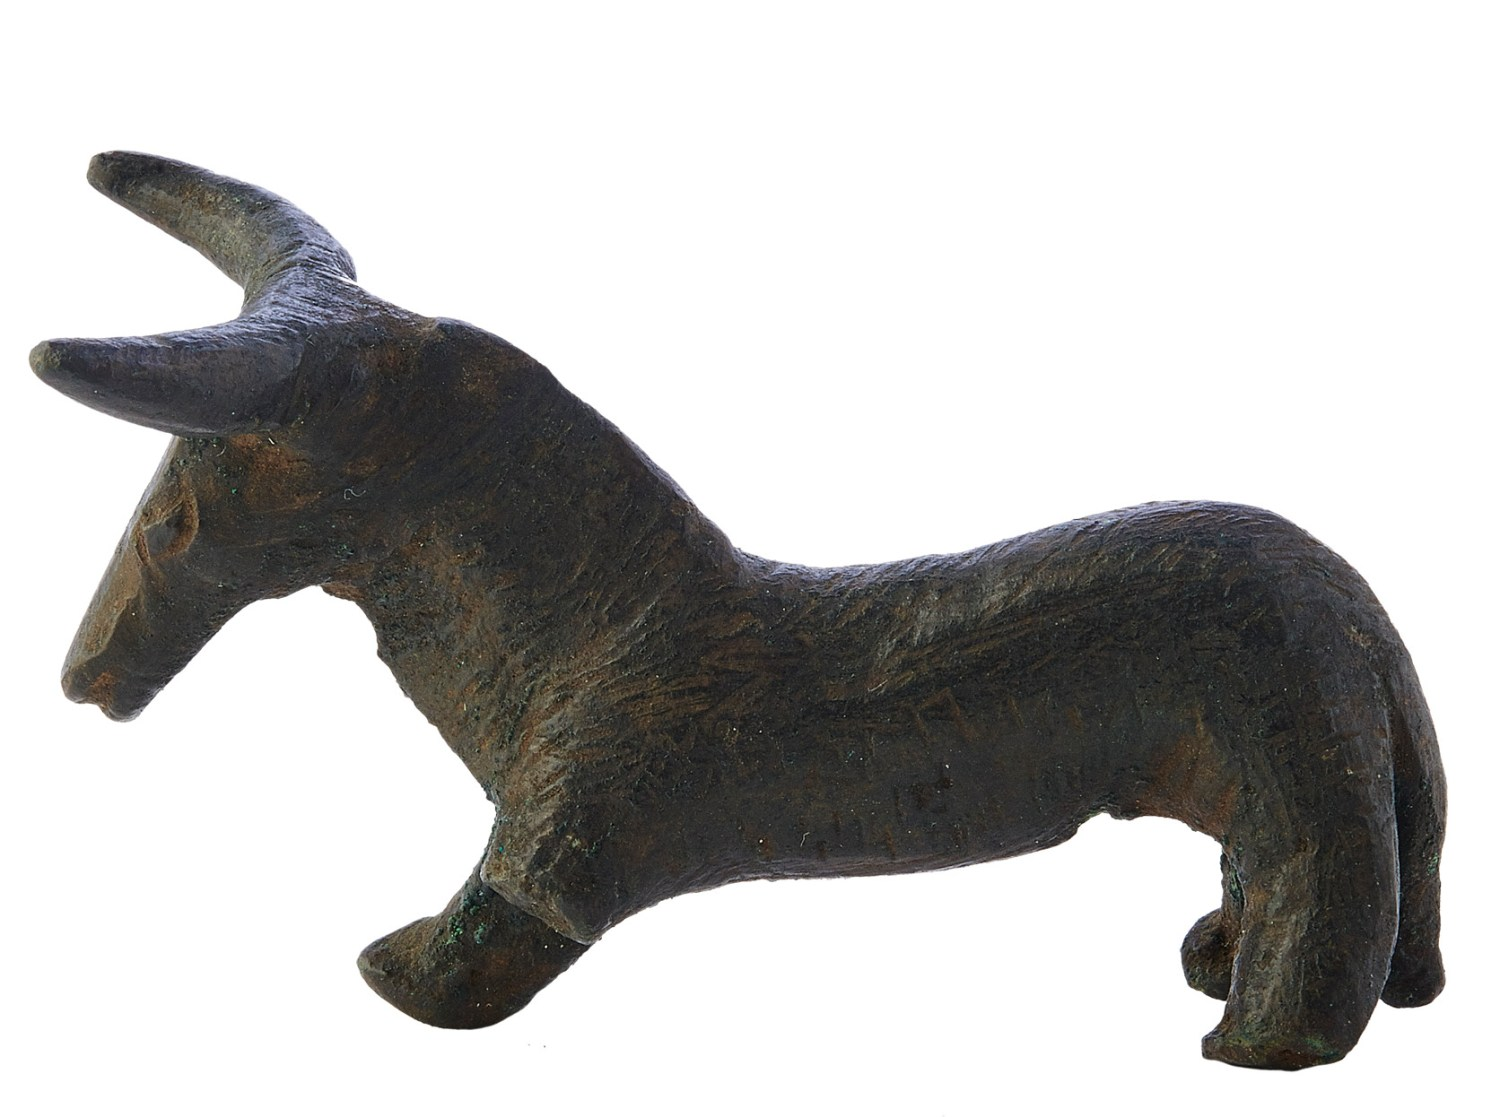 above Bull from the cave sanctuaries of Sierra Morena (Jaén). 4th-2nd century BC, bronze. Size: 4cm high